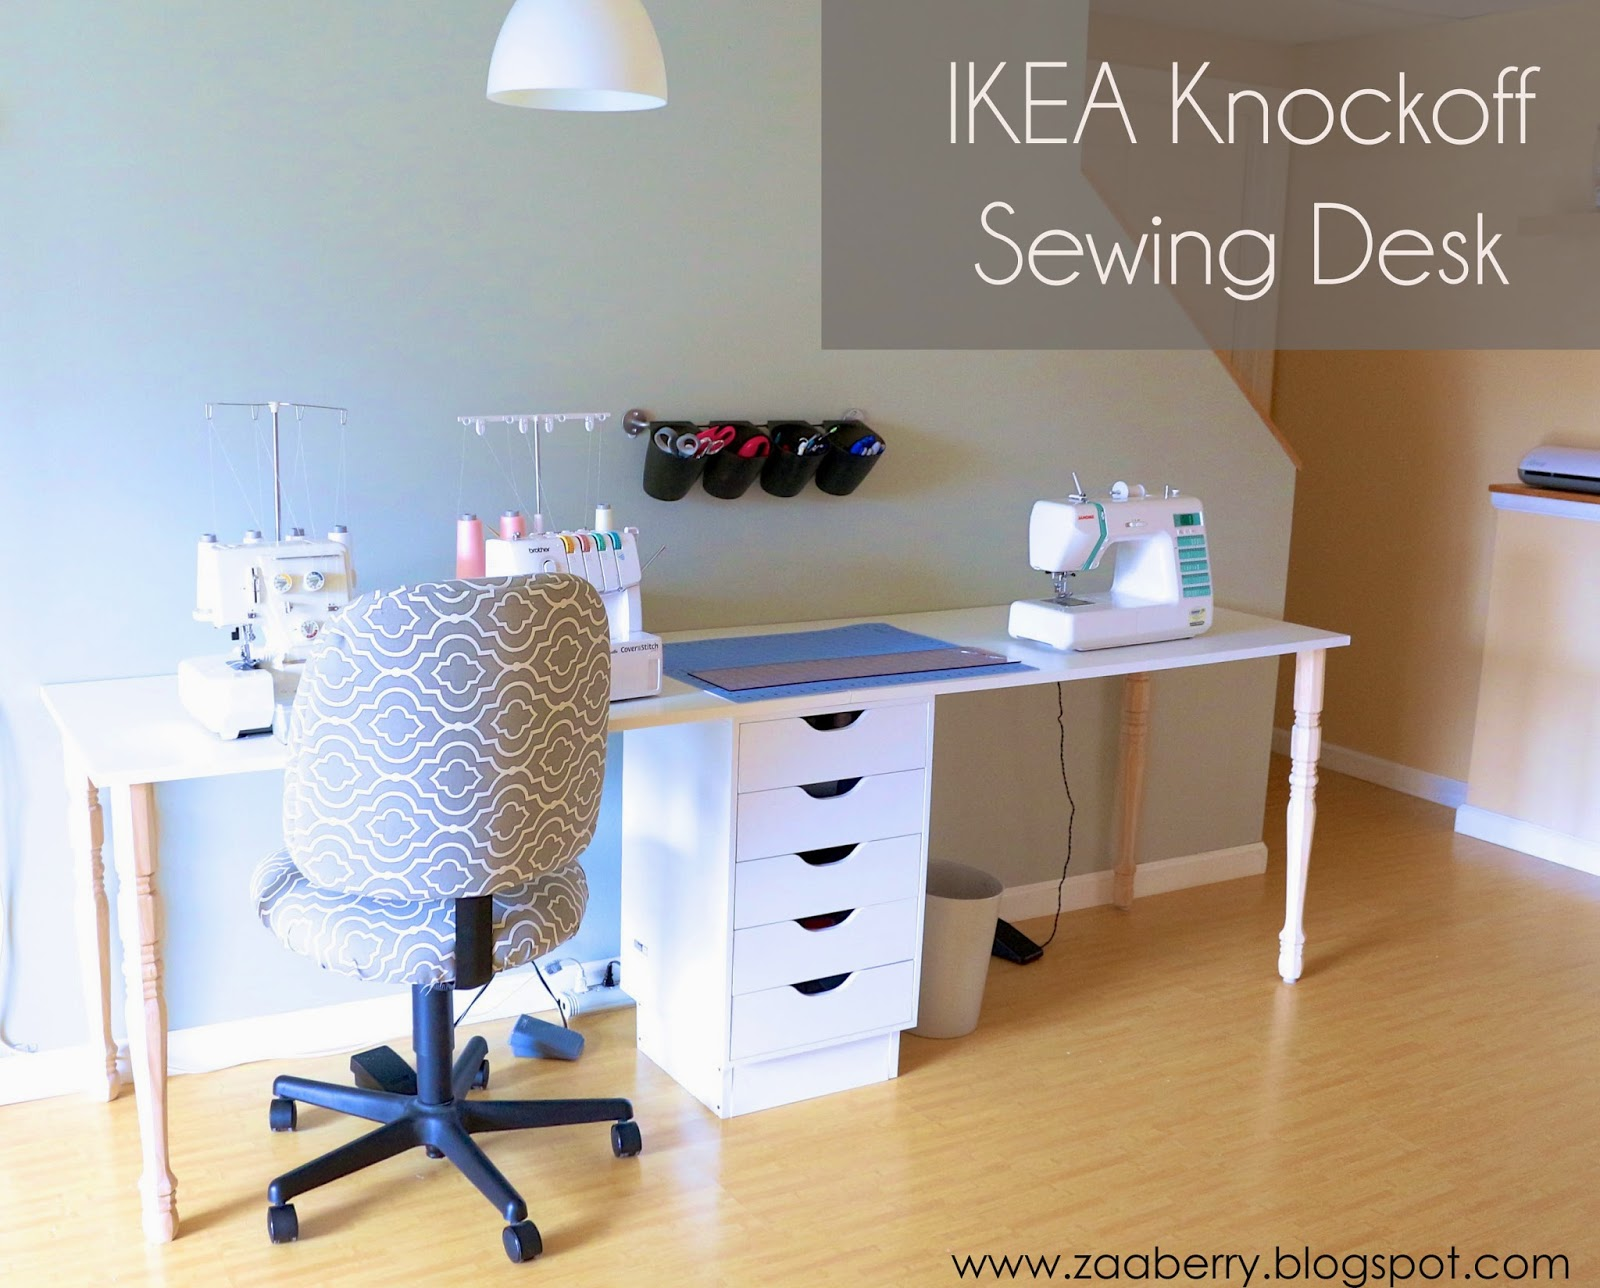 Diy Ikea zaaberry diy ikea knockoff sewing table